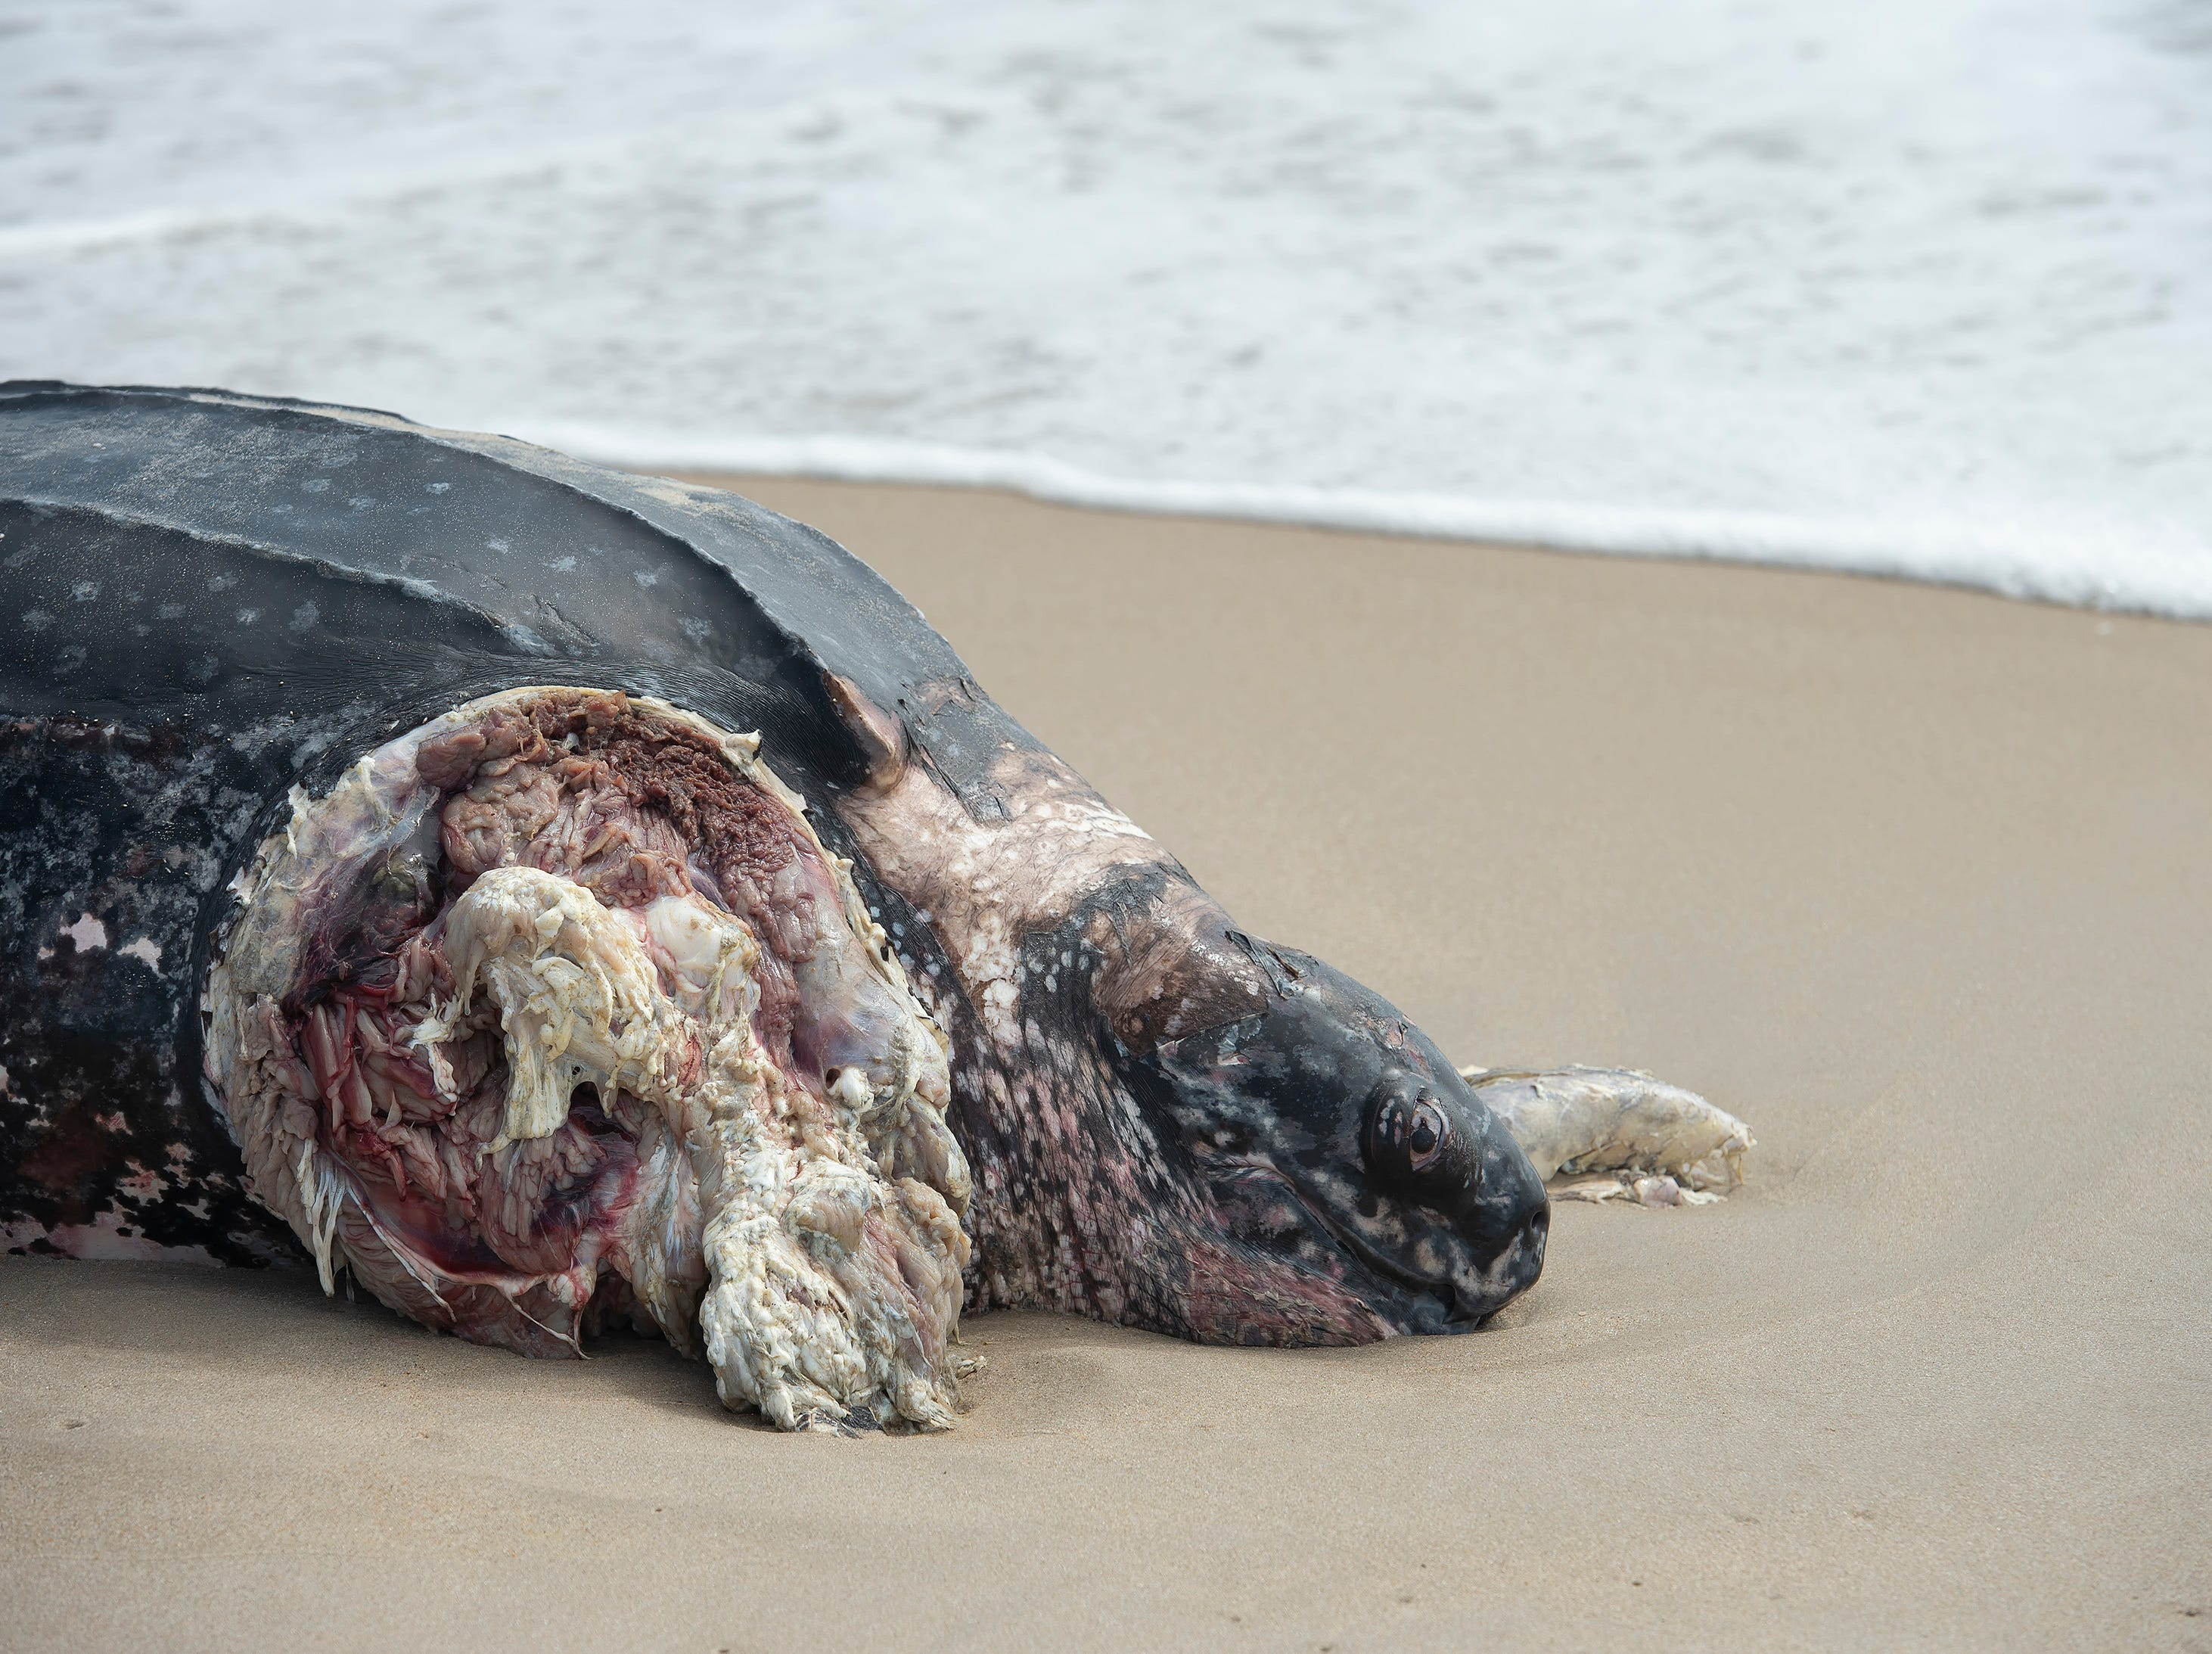 Leatherback sea turtle washed up along the Delaware Seashore State Park Beach, Tower Road south of Dewey Beach.